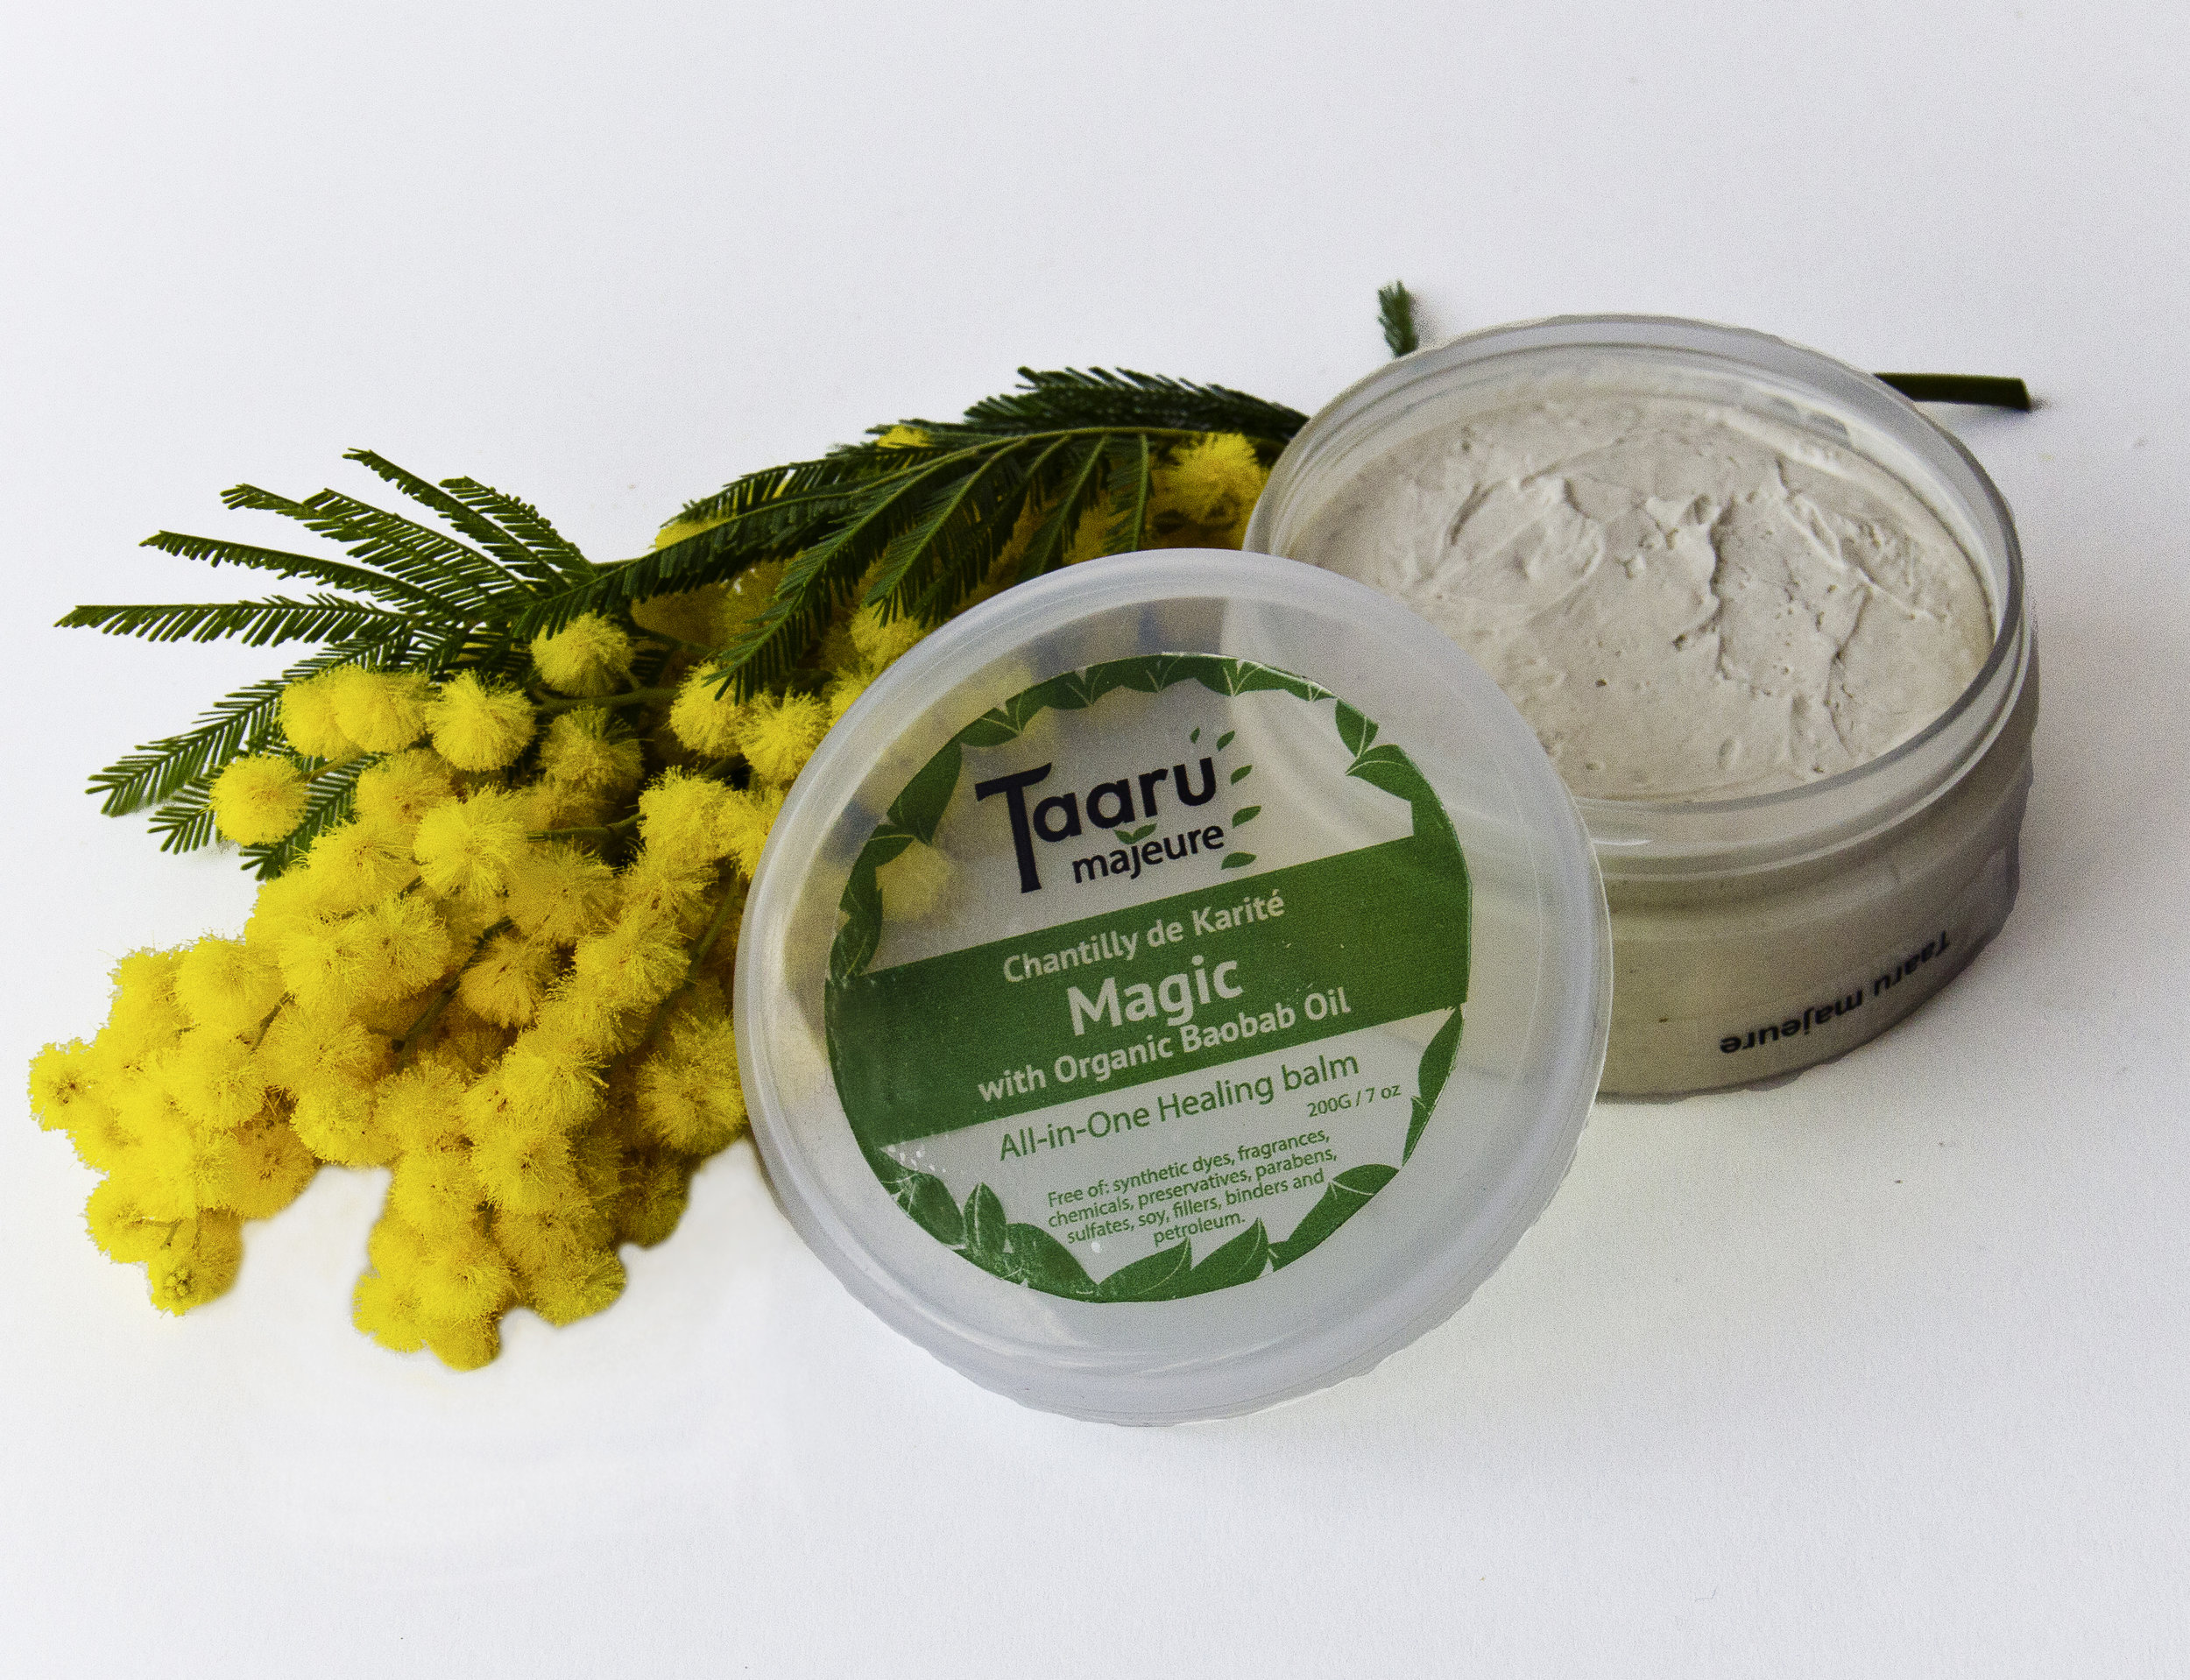 All-in-One Healing Balm